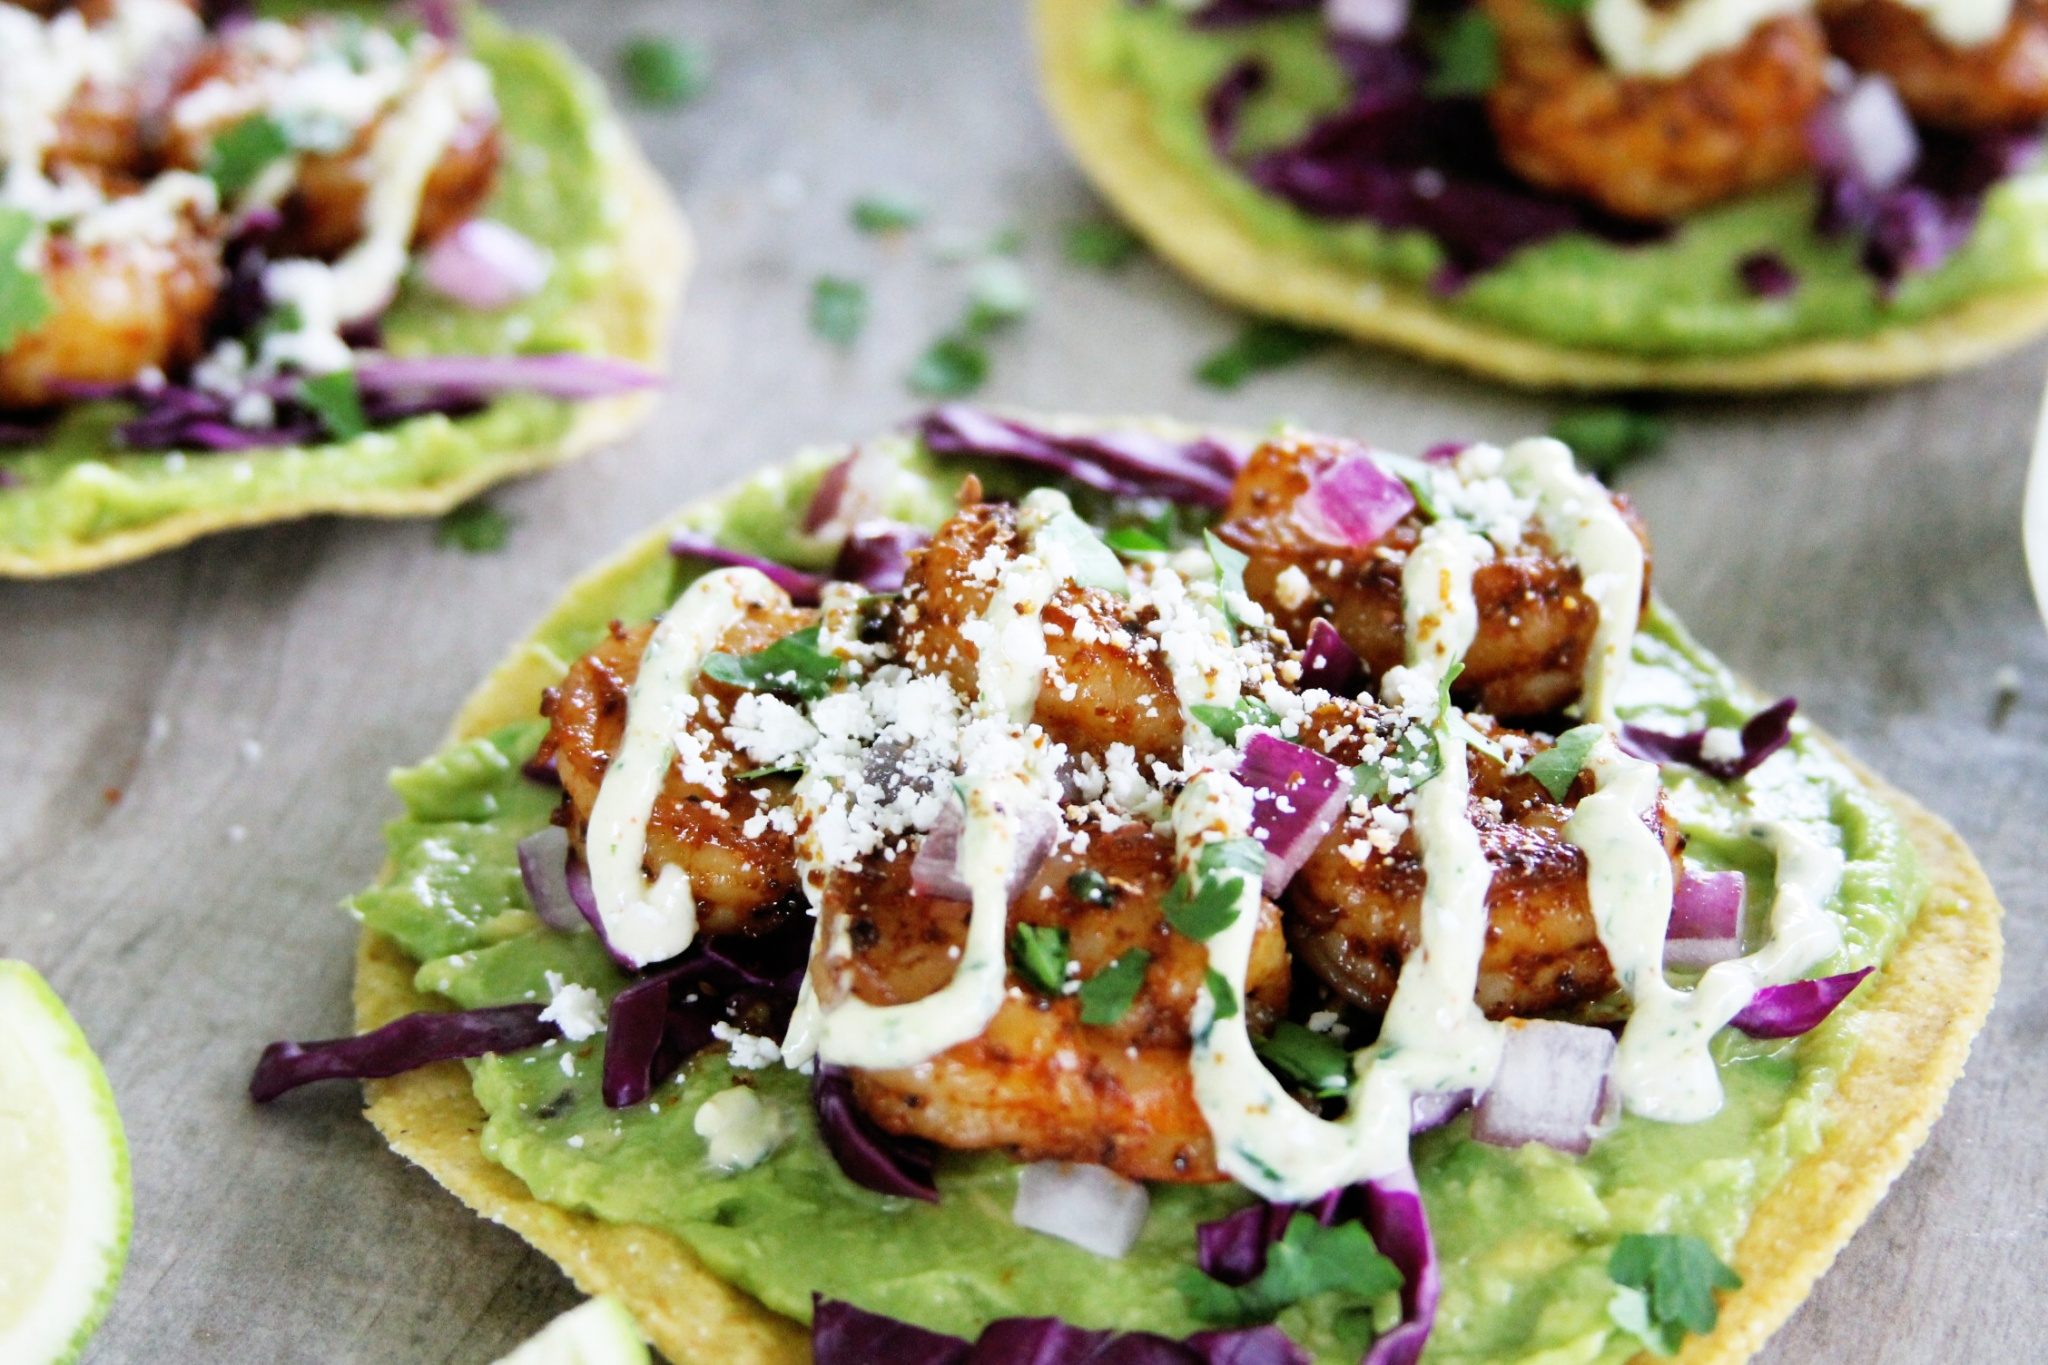 These spicy avocado and chipotle shrimp tostadas with cilantro crema ...